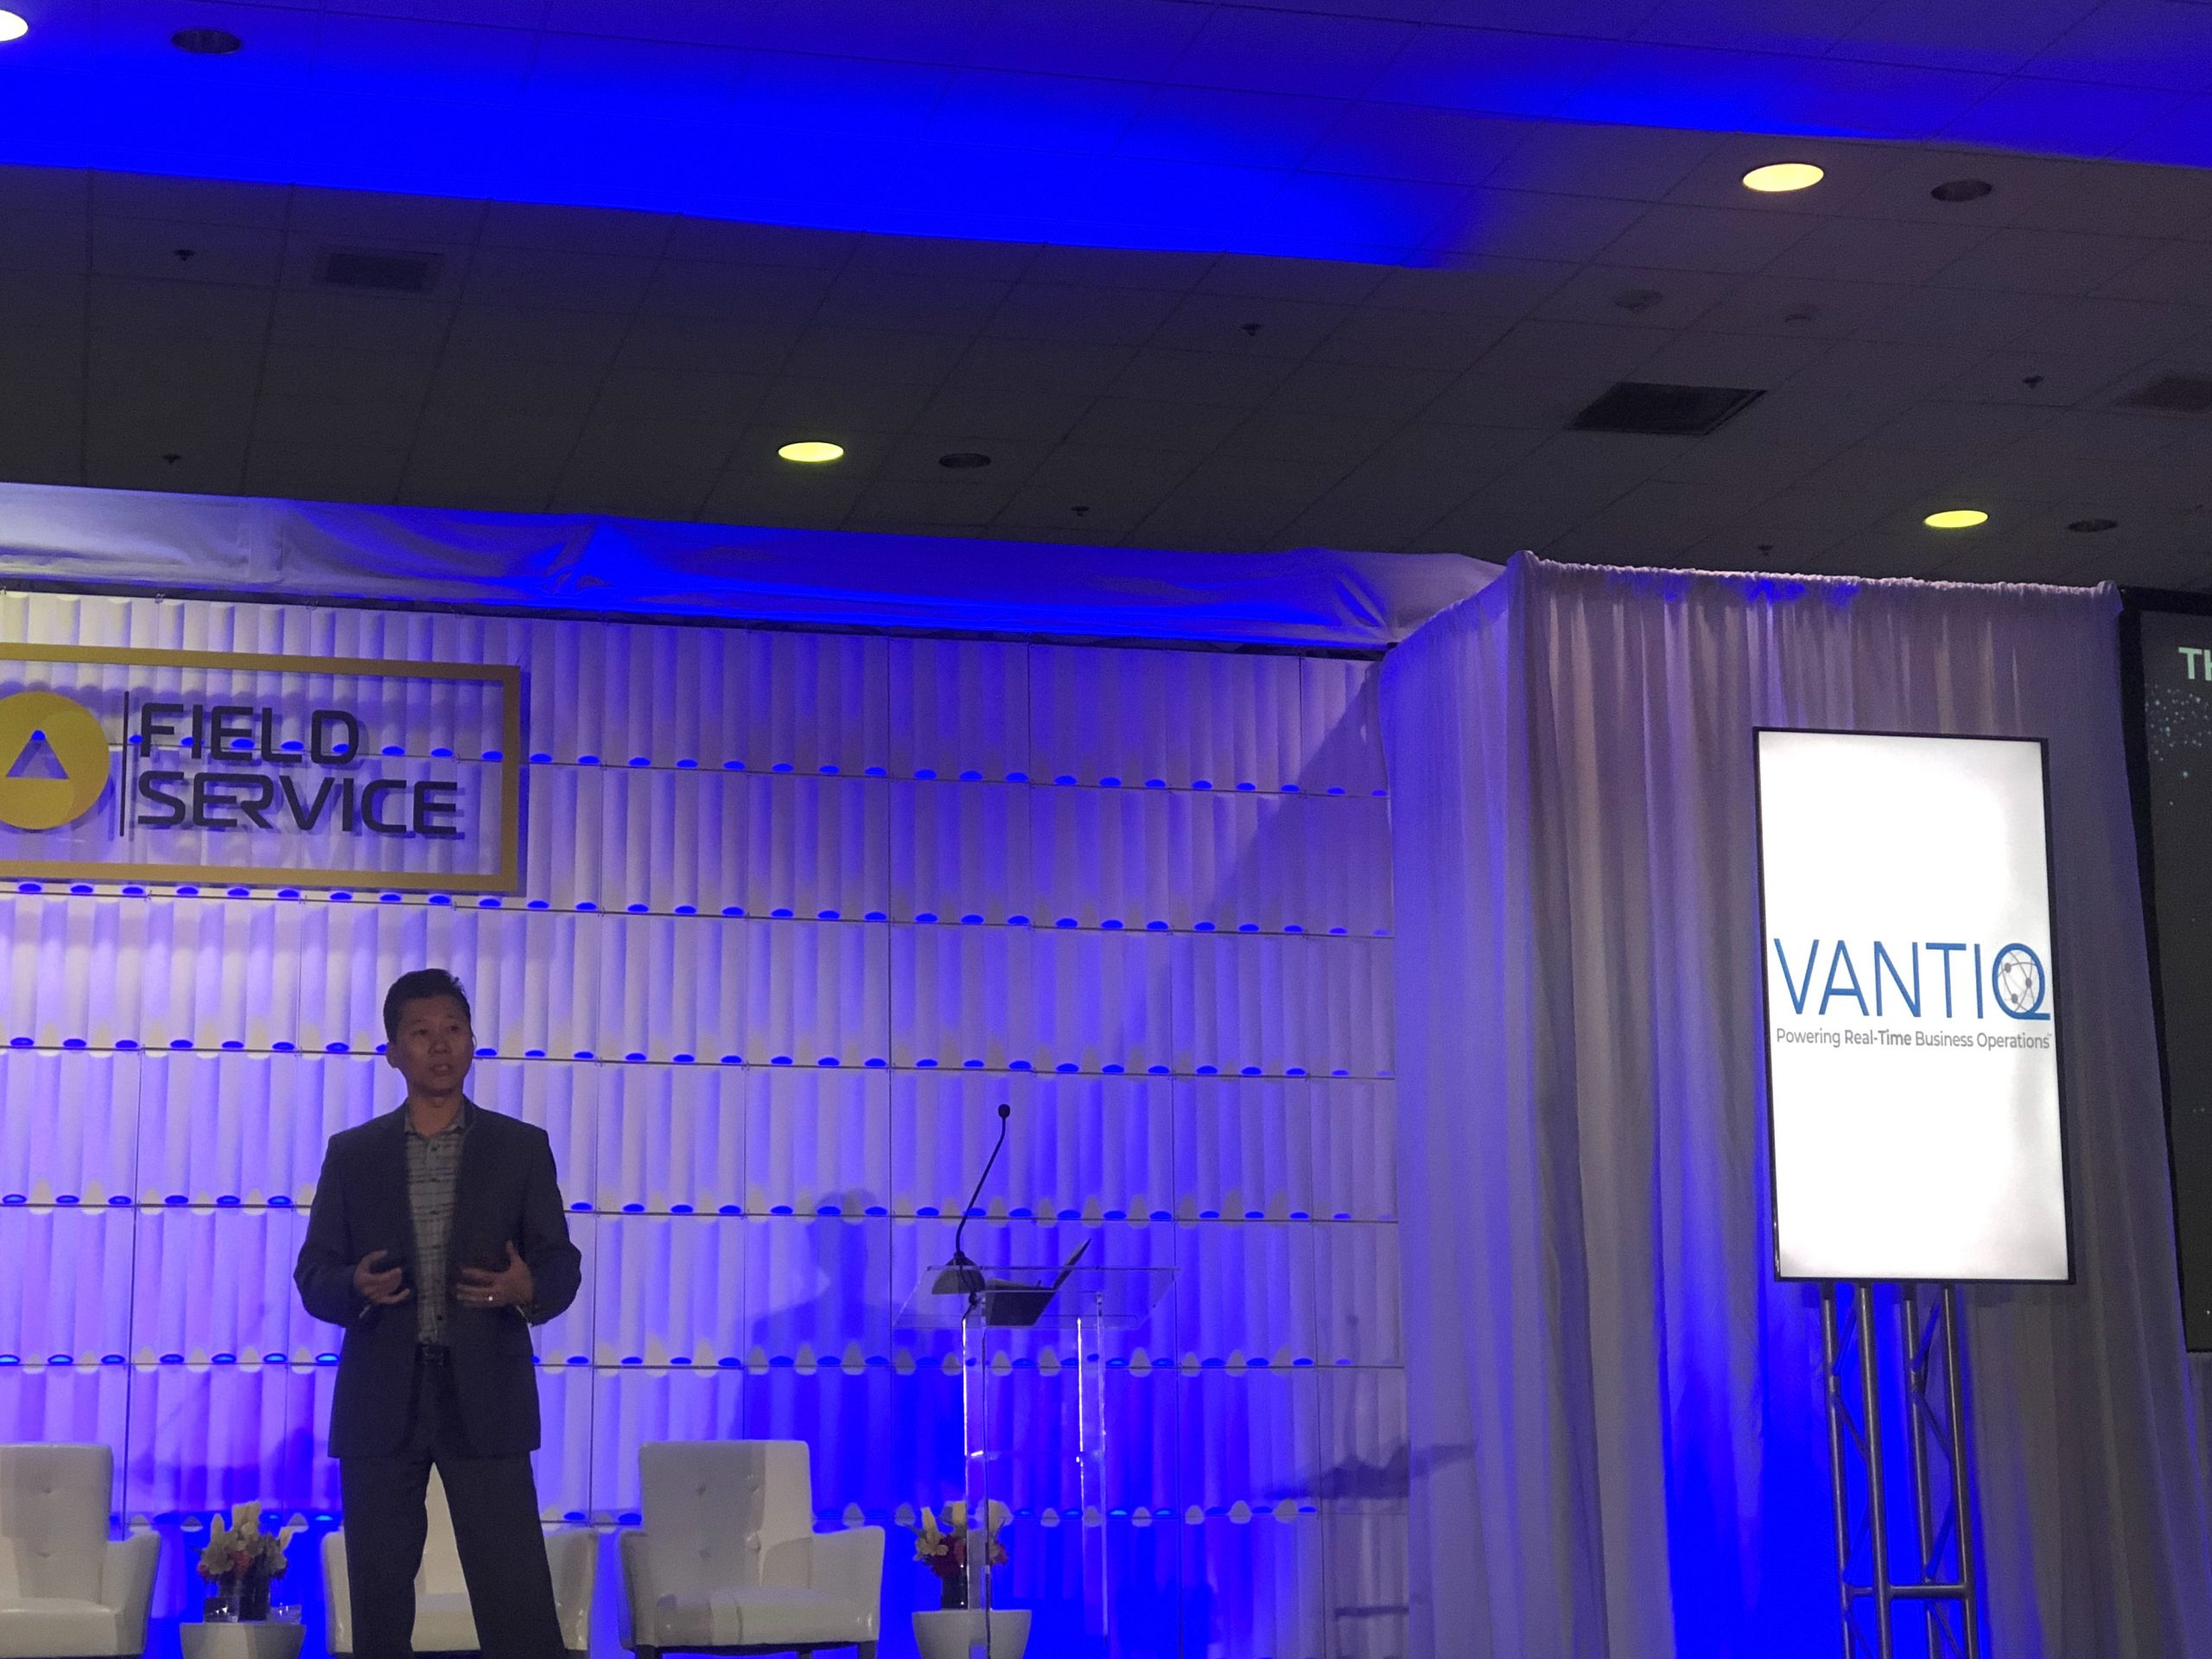 Eddie Tung speaking about how VANTIQ can create real-time field service applications